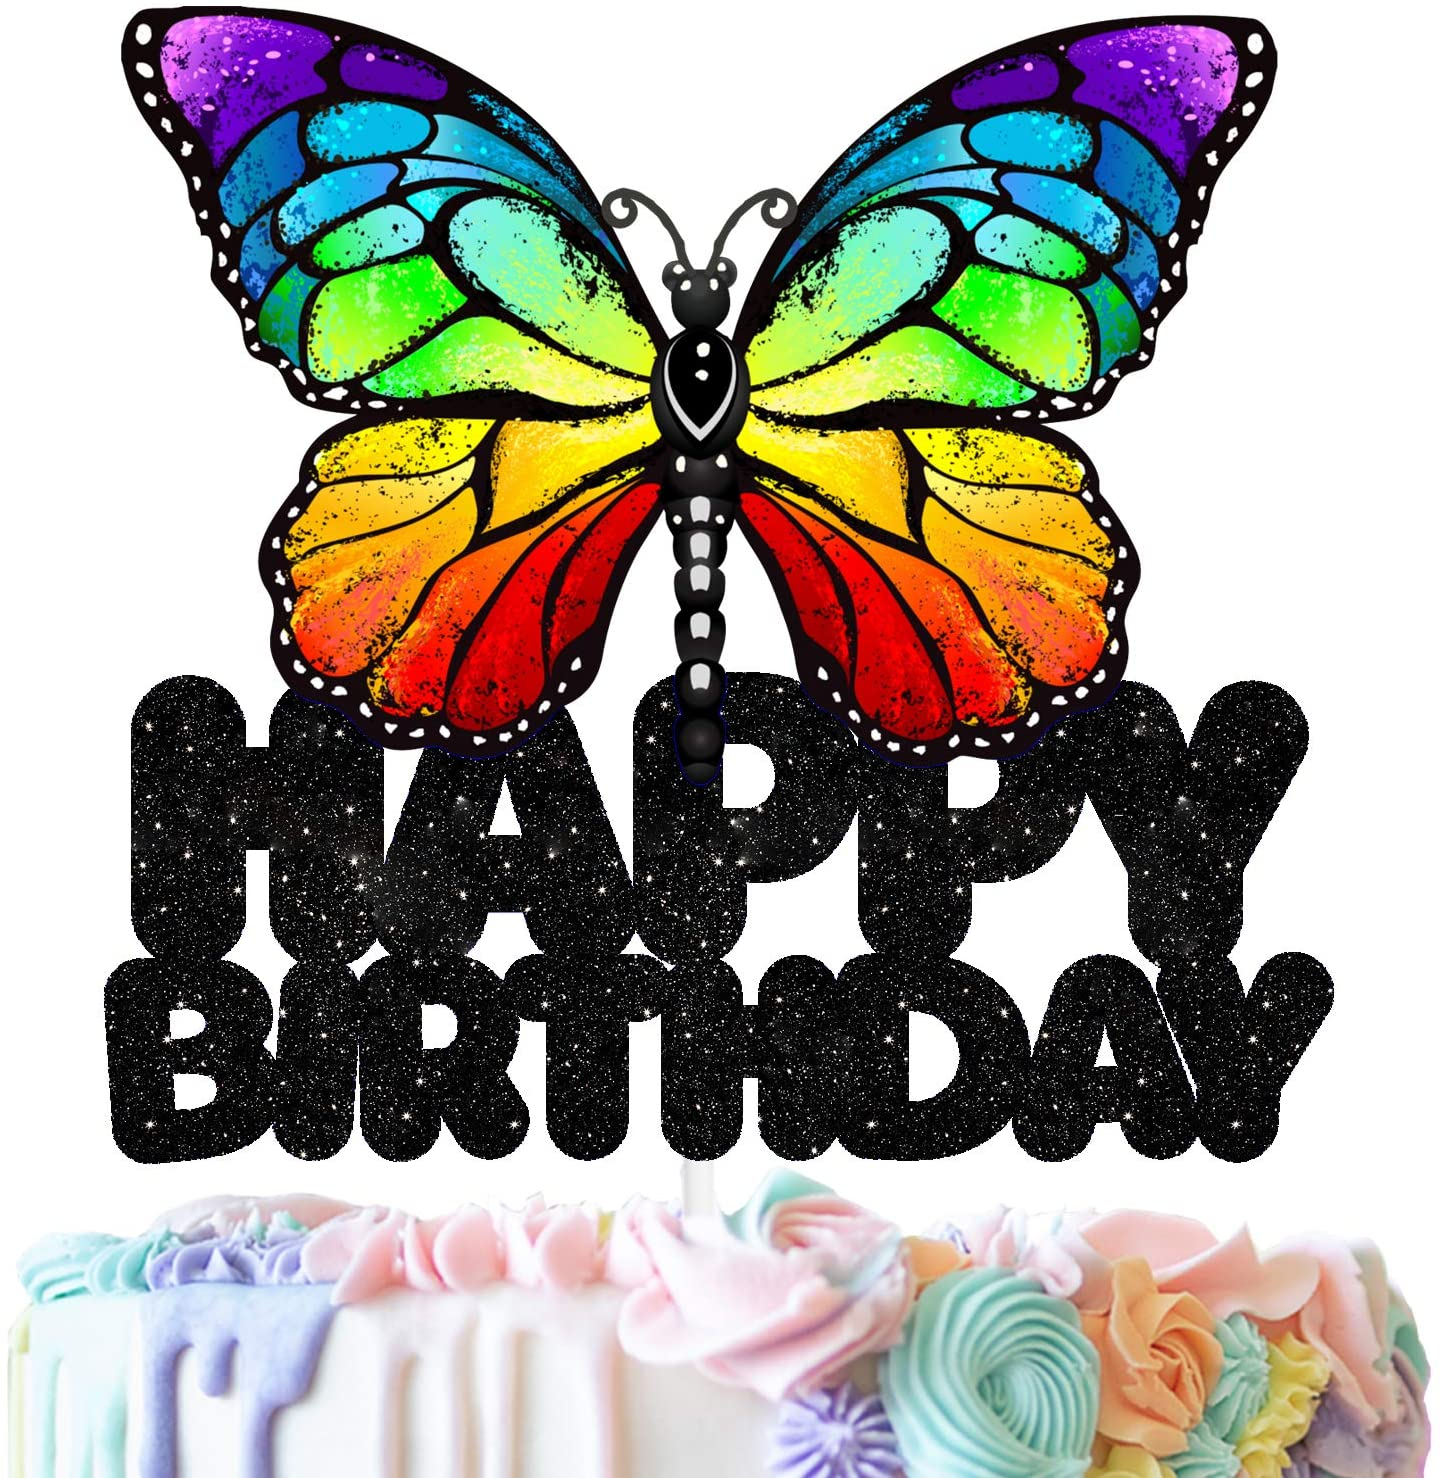 Butterfly Happy Birthday Cake Topper Decorations with Multicolored Butterfly for Birthday Theme Baby Shower Party Decor Supplies